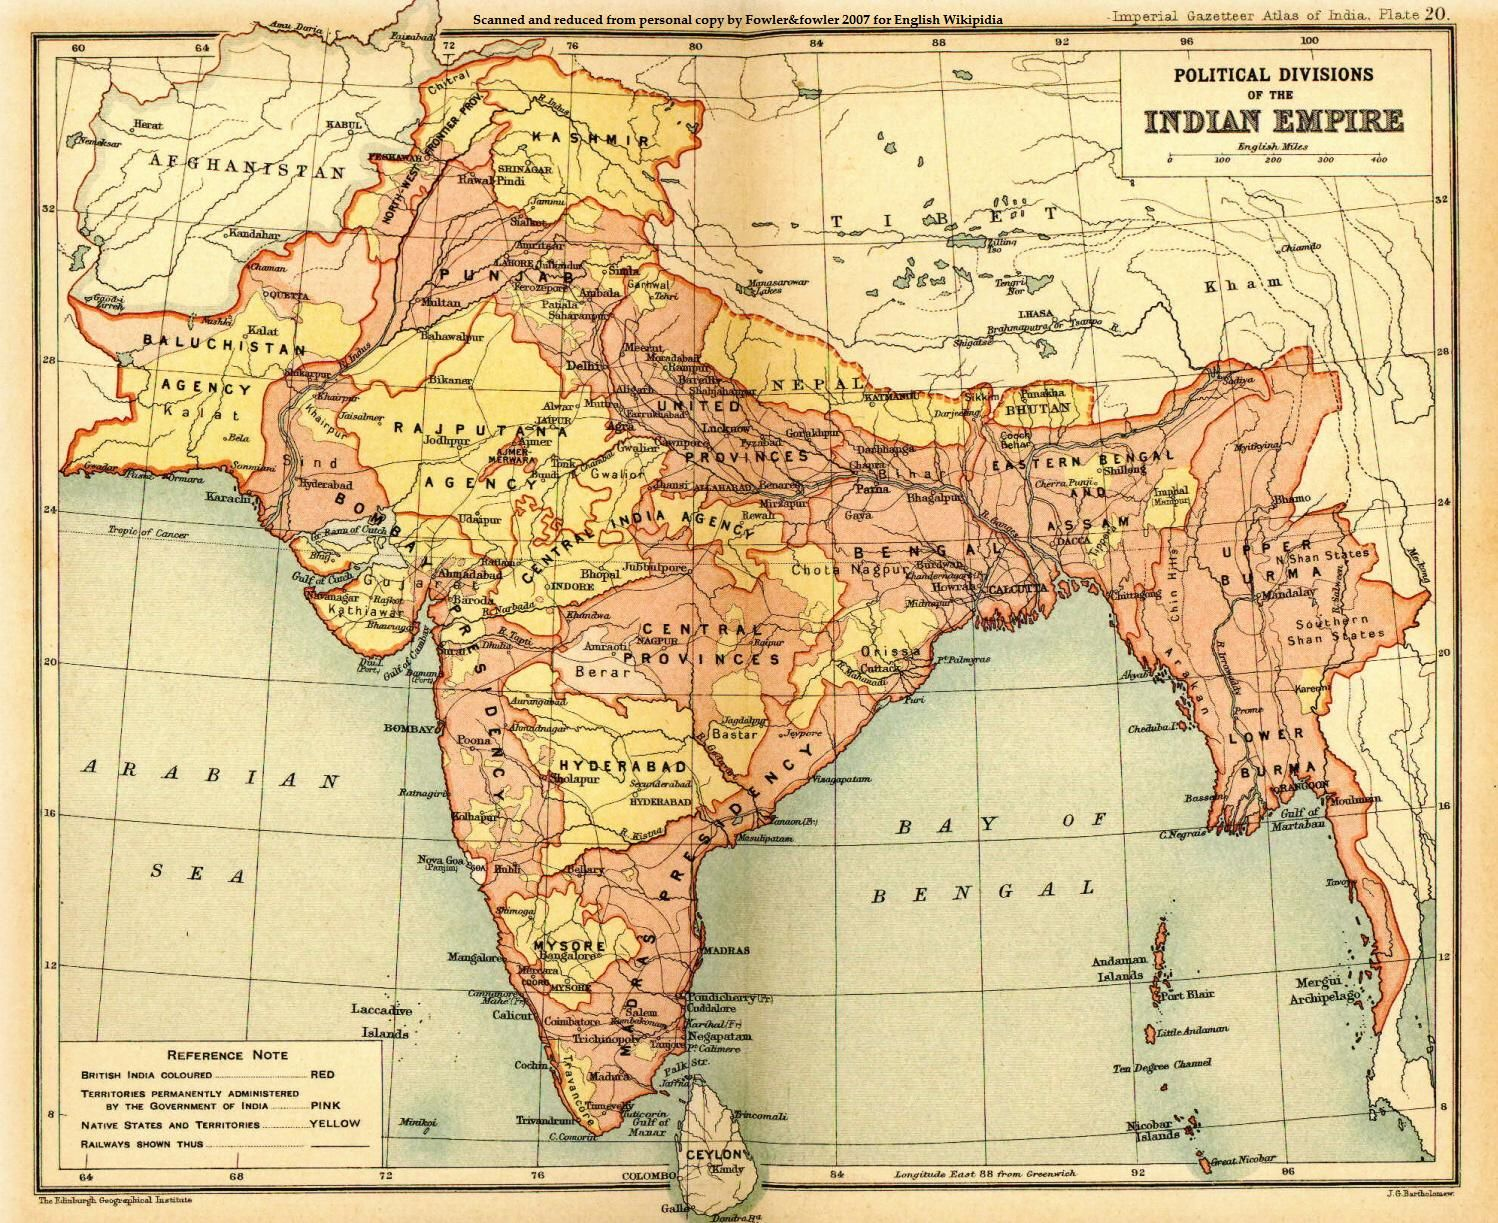 1760 india map 1857 3200bc india map ancient indian maps ancient 1760 india map 1857 3200bc india map ancient indian maps ancient gumiabroncs Gallery